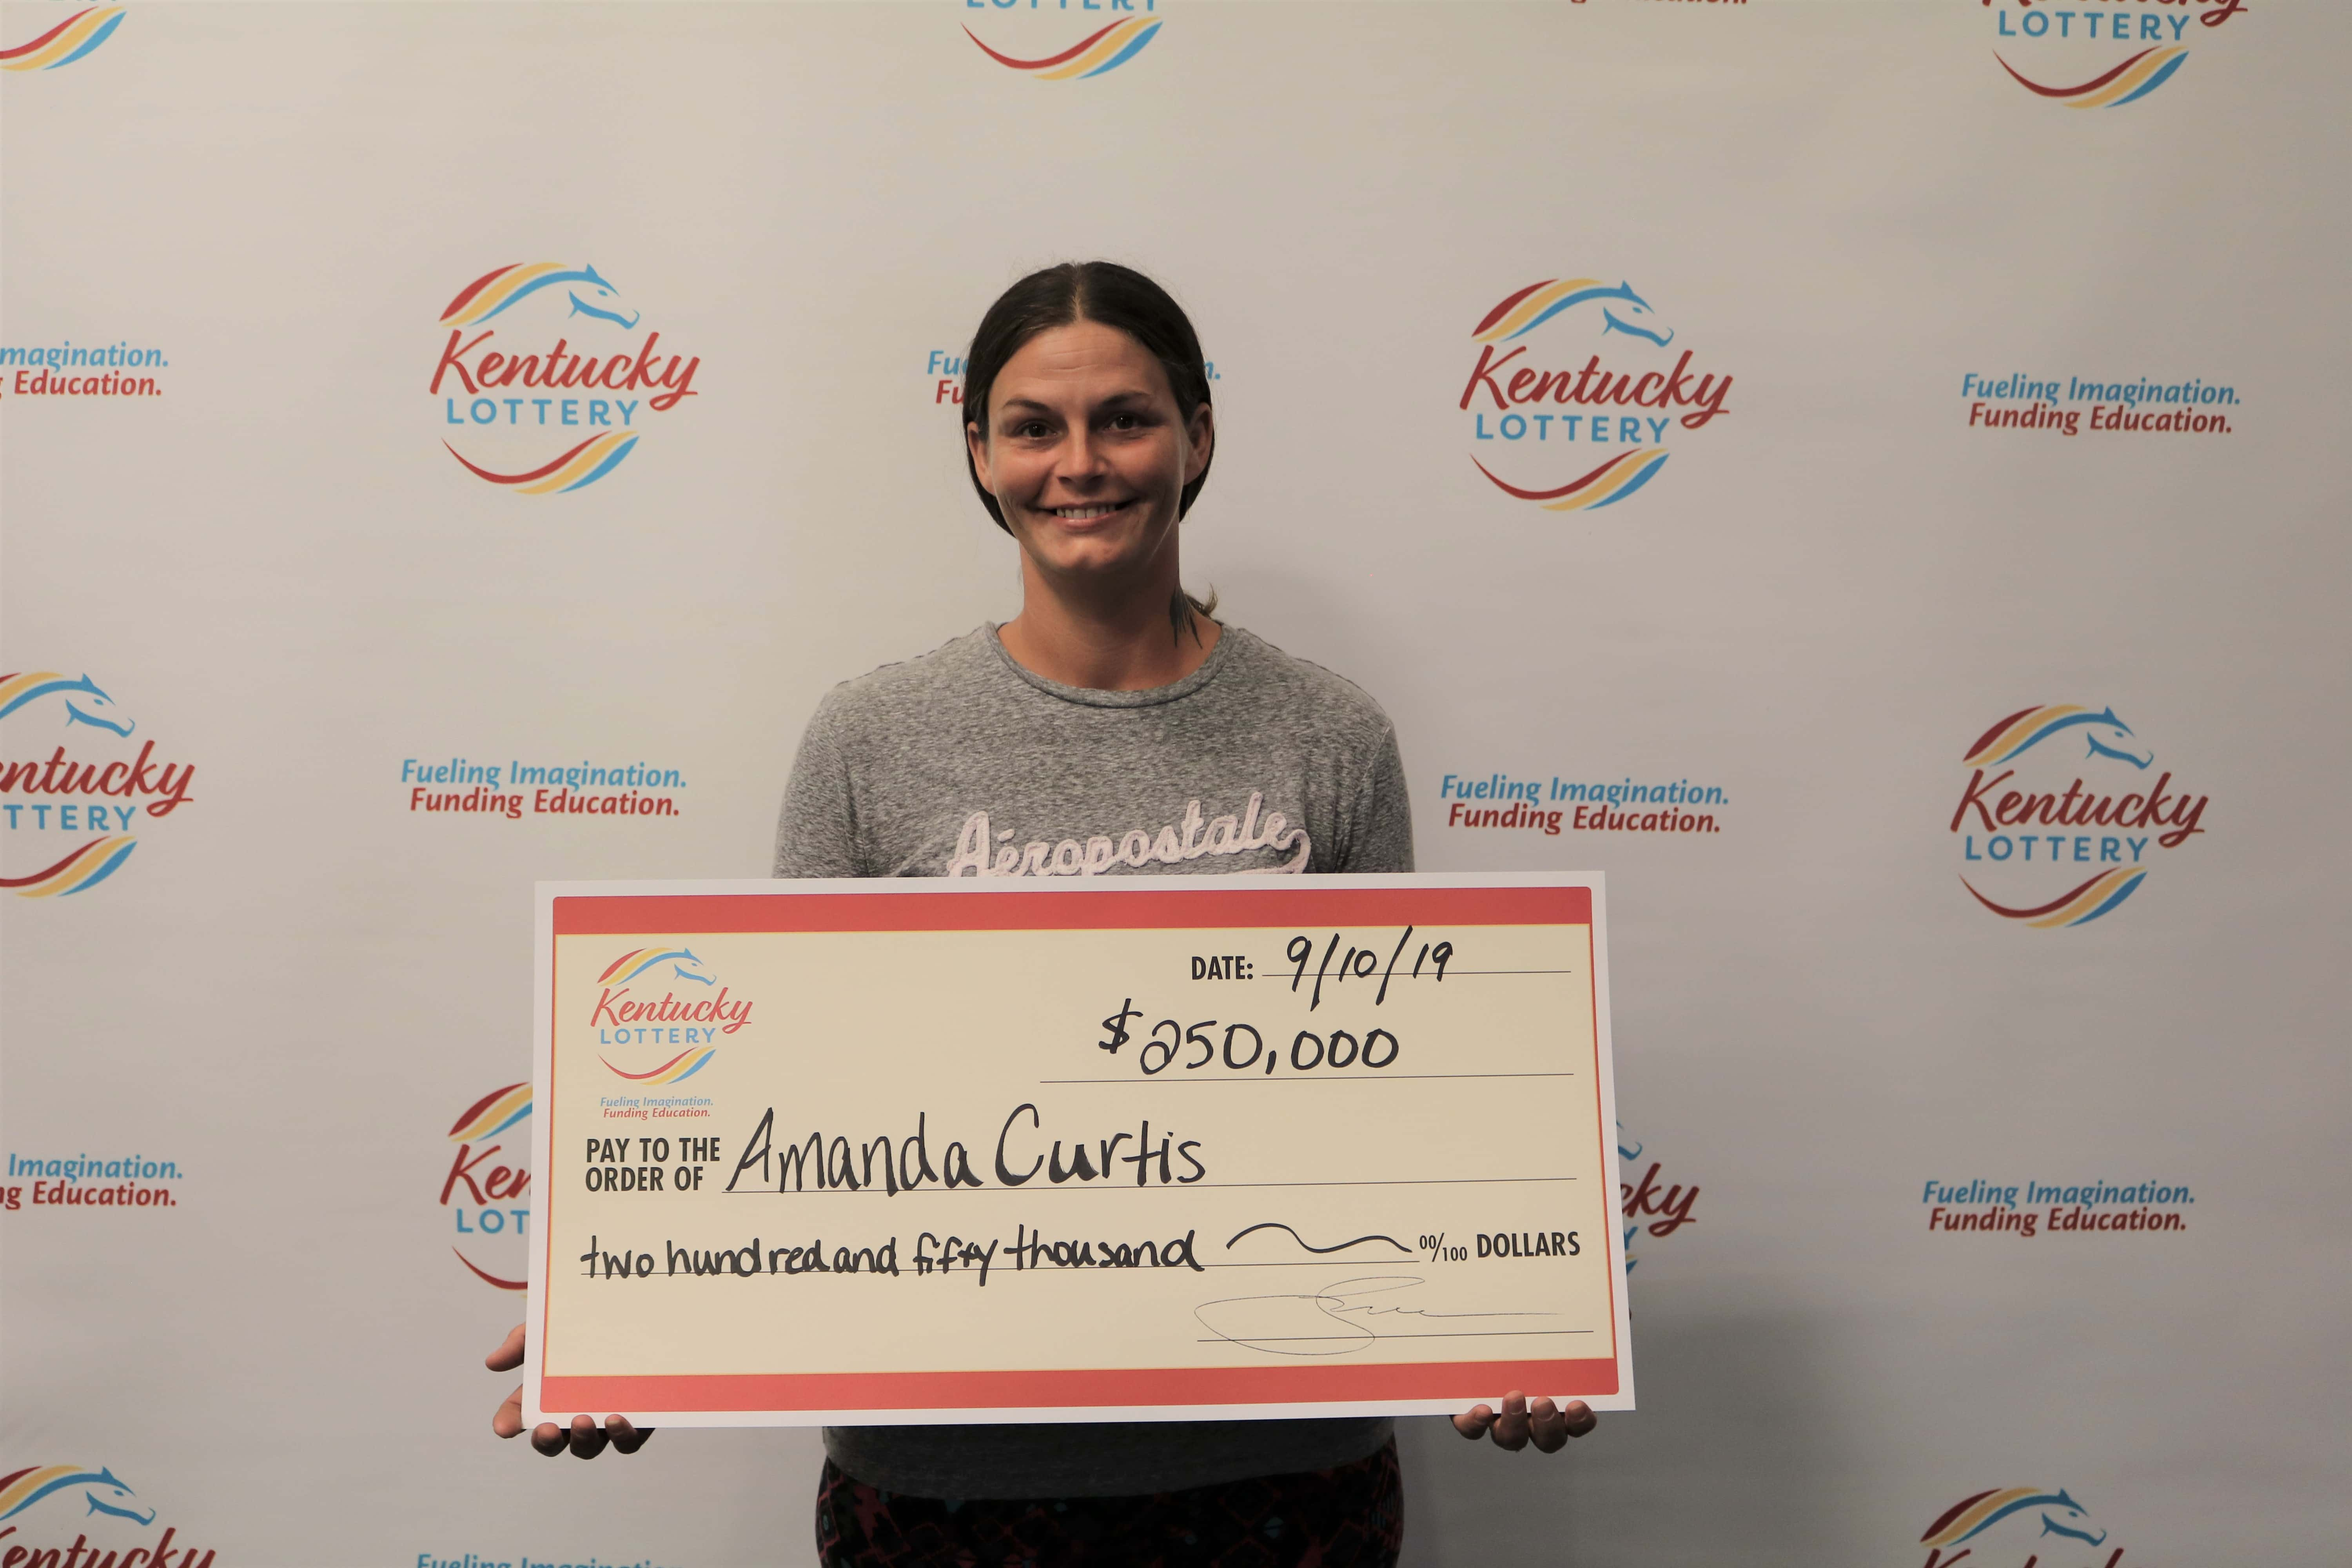 Nortonville Woman Wins $250,000 From KY Lottery Ticket | WHVO-FM